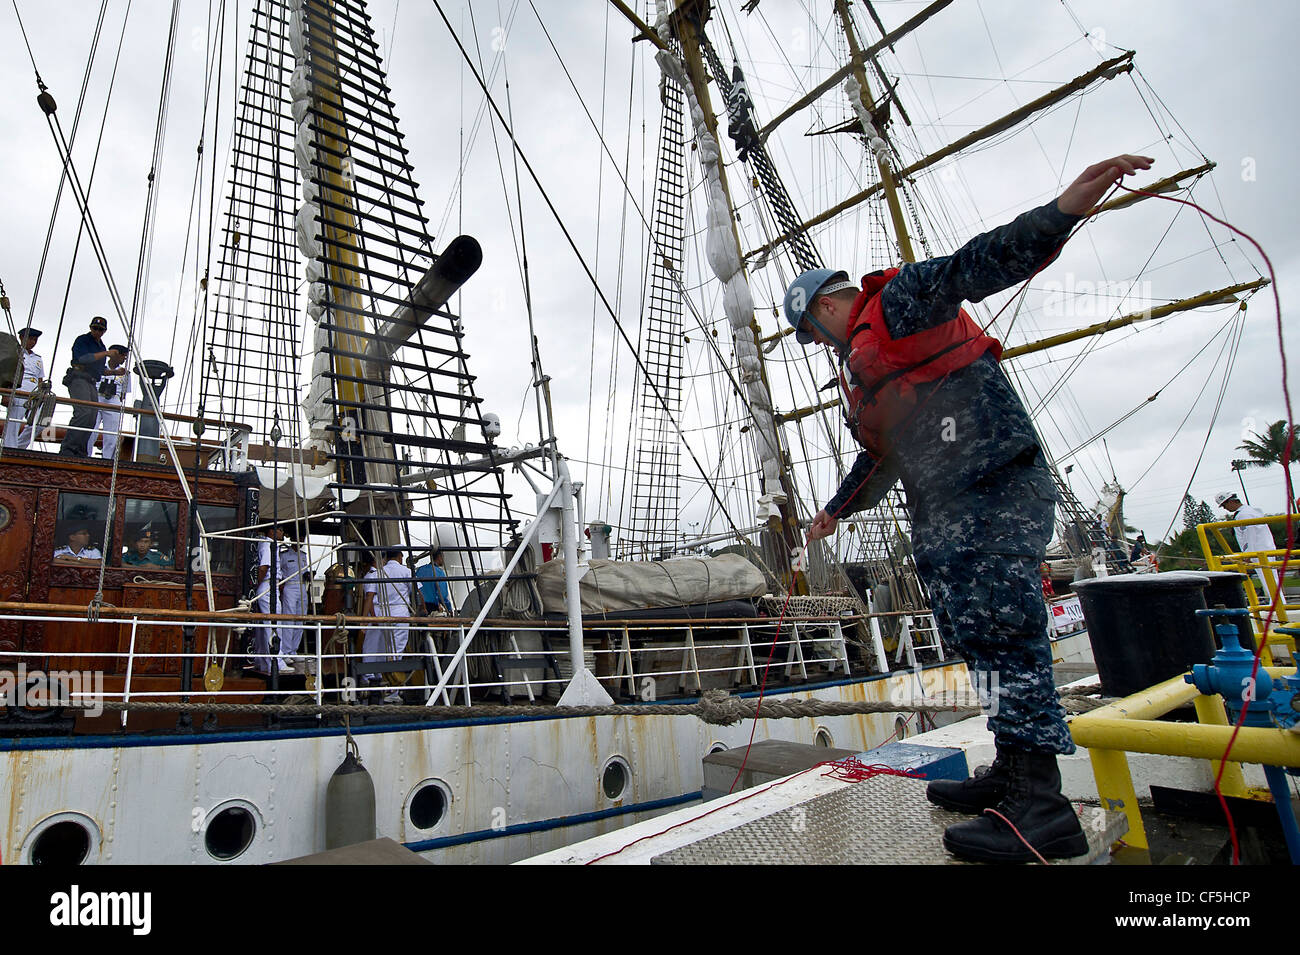 U.S. Navy Petty Officer 3rd Class Christopher Maddock helps tie off the lines of the Indonesian Navy tall ship, - Stock Image